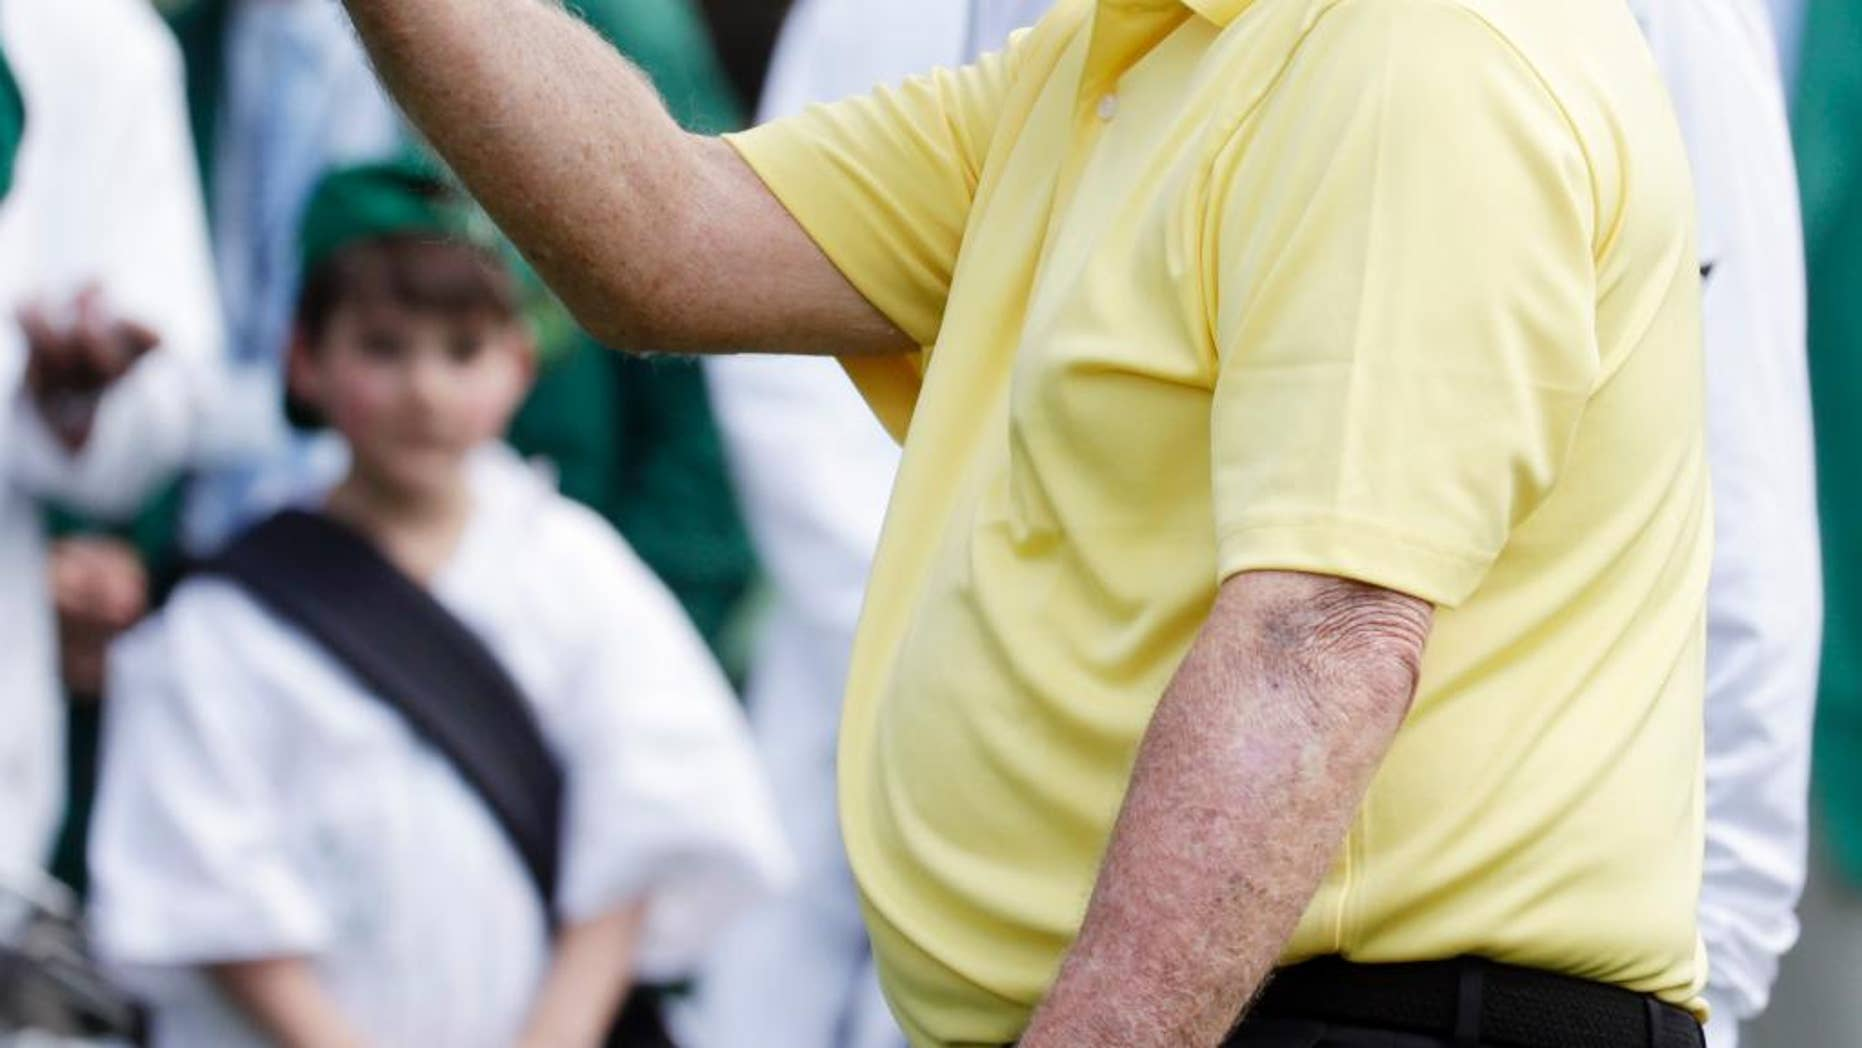 Jack Nicklaus watches his tee shot during the Par 3 contest at the Masters golf tournament Wednesday, April 8, 2015, in Augusta, Ga. (AP Photo/Darron Cummings)